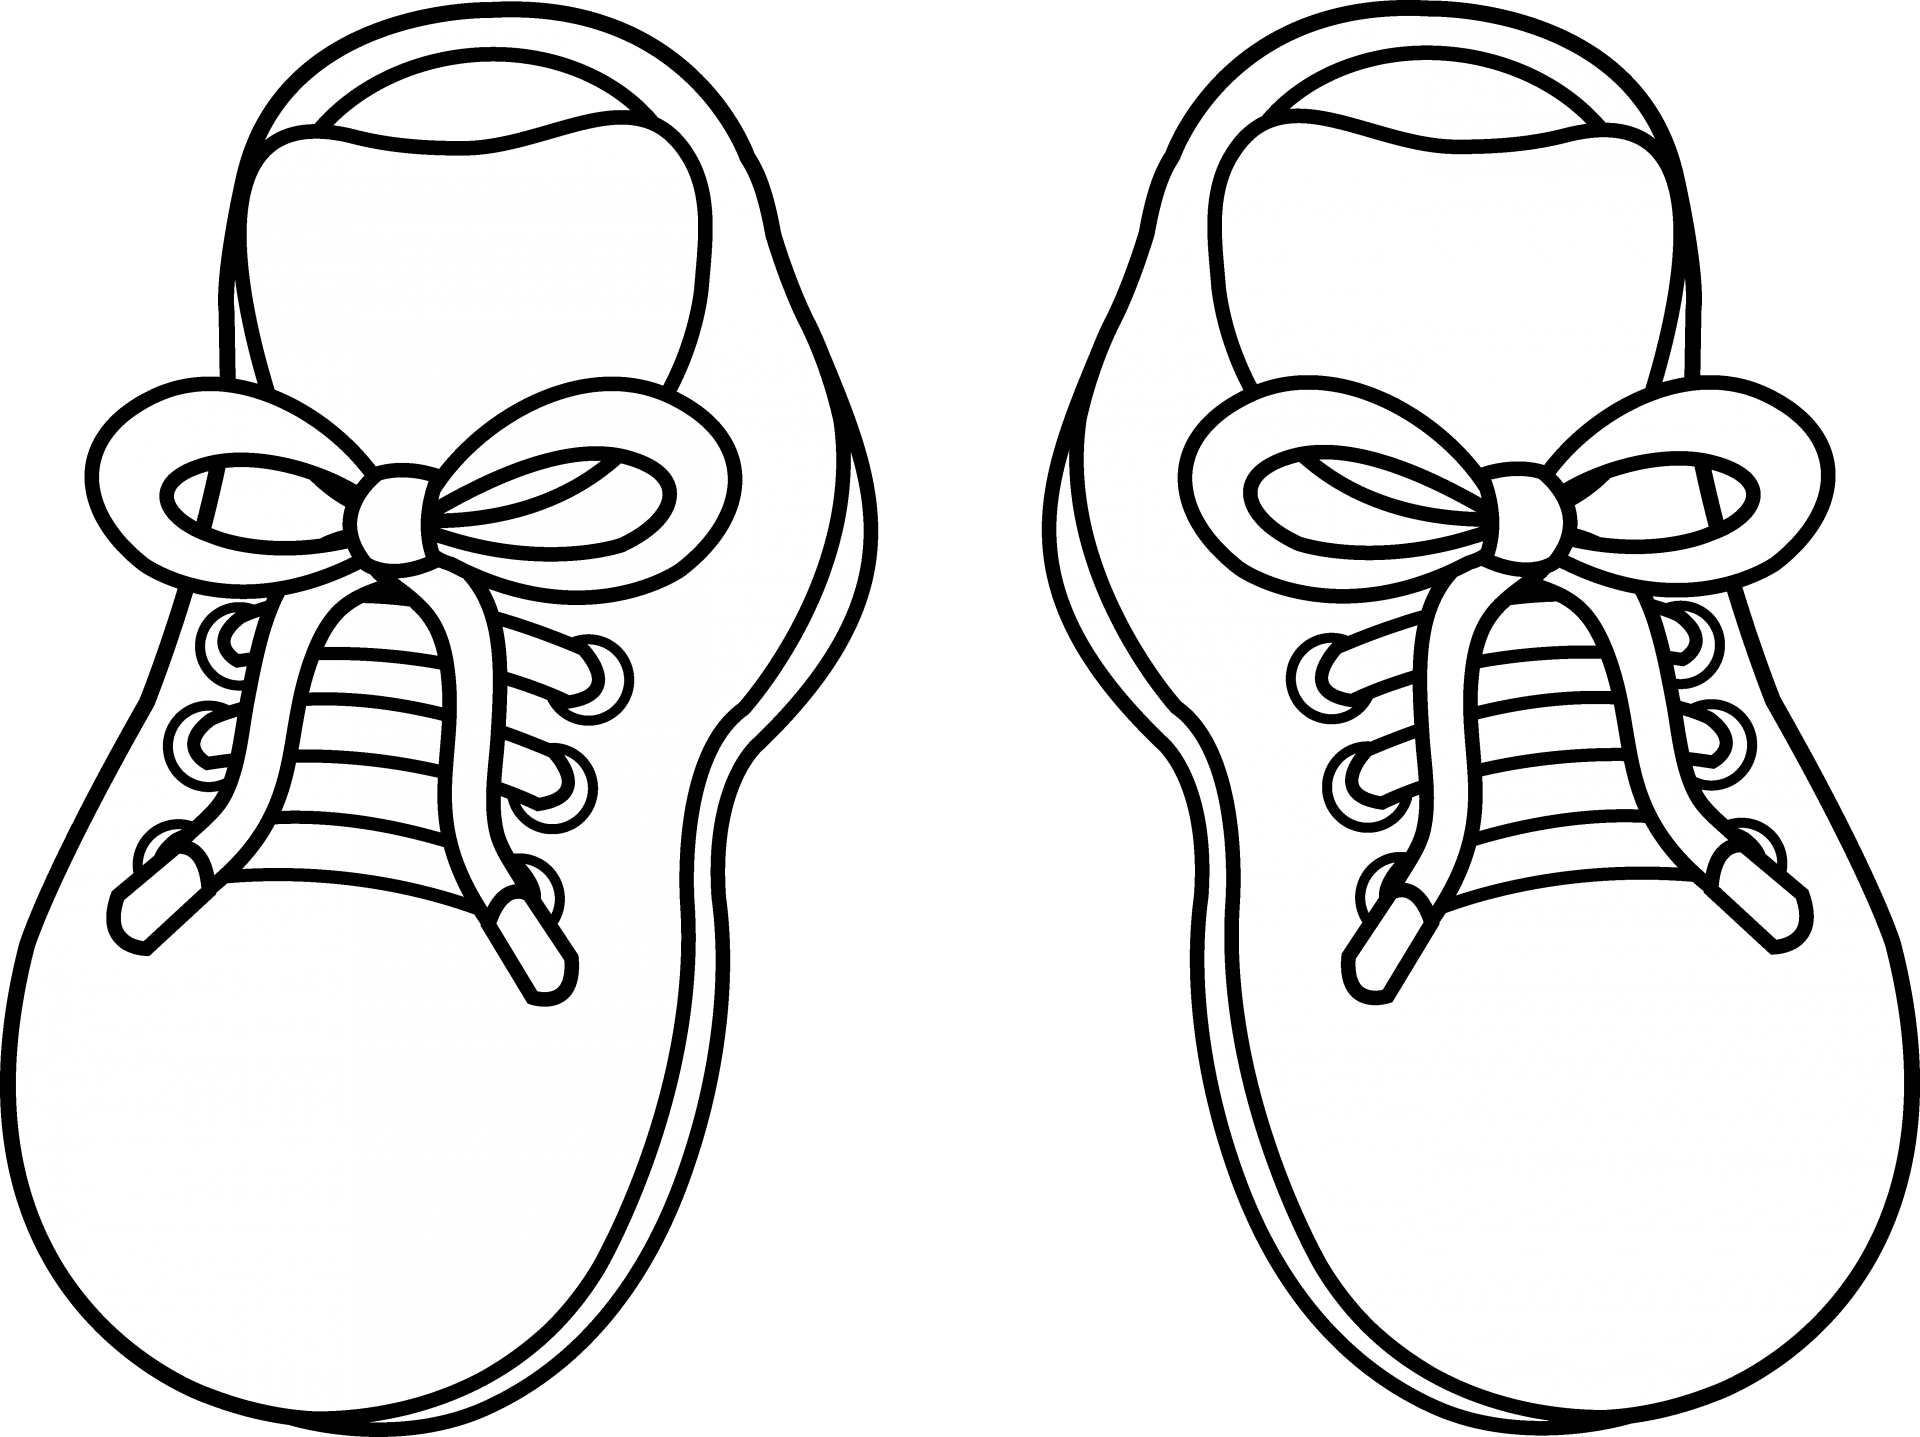 Nike basketball tennis shoe clipart graphic black and white stock Hurry Basketball Shoe Coloring Page Pages Www Running Ballet Photo ... graphic black and white stock